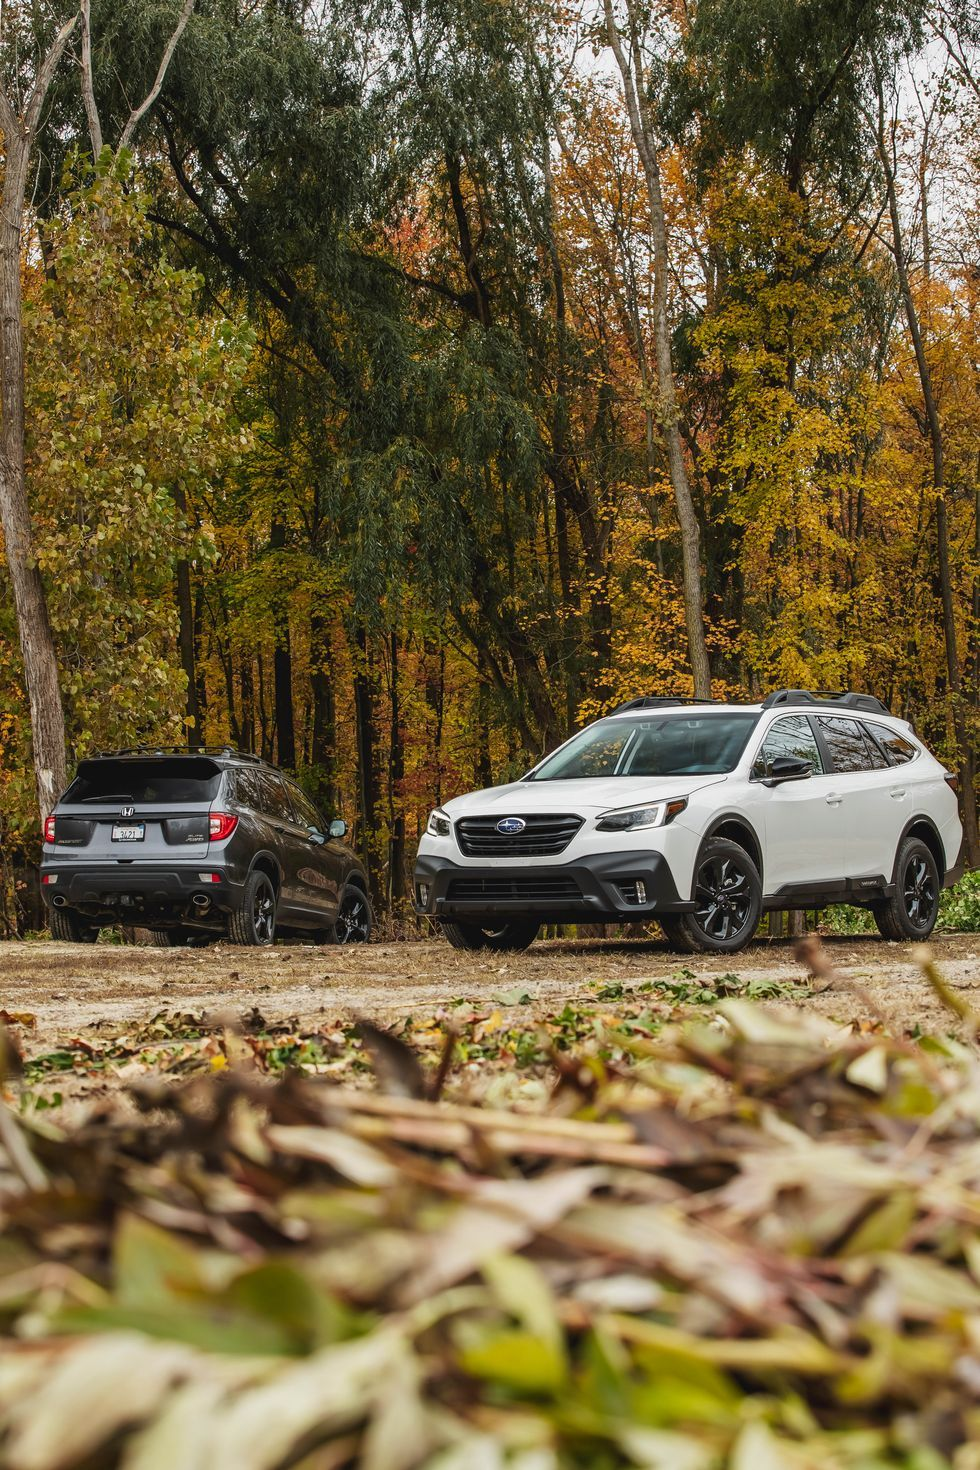 2020 Subaru Outback Vs 2019 Honda Passport Which Is The Better Mid Size Suv Subaru Subaru Outback Honda Passport